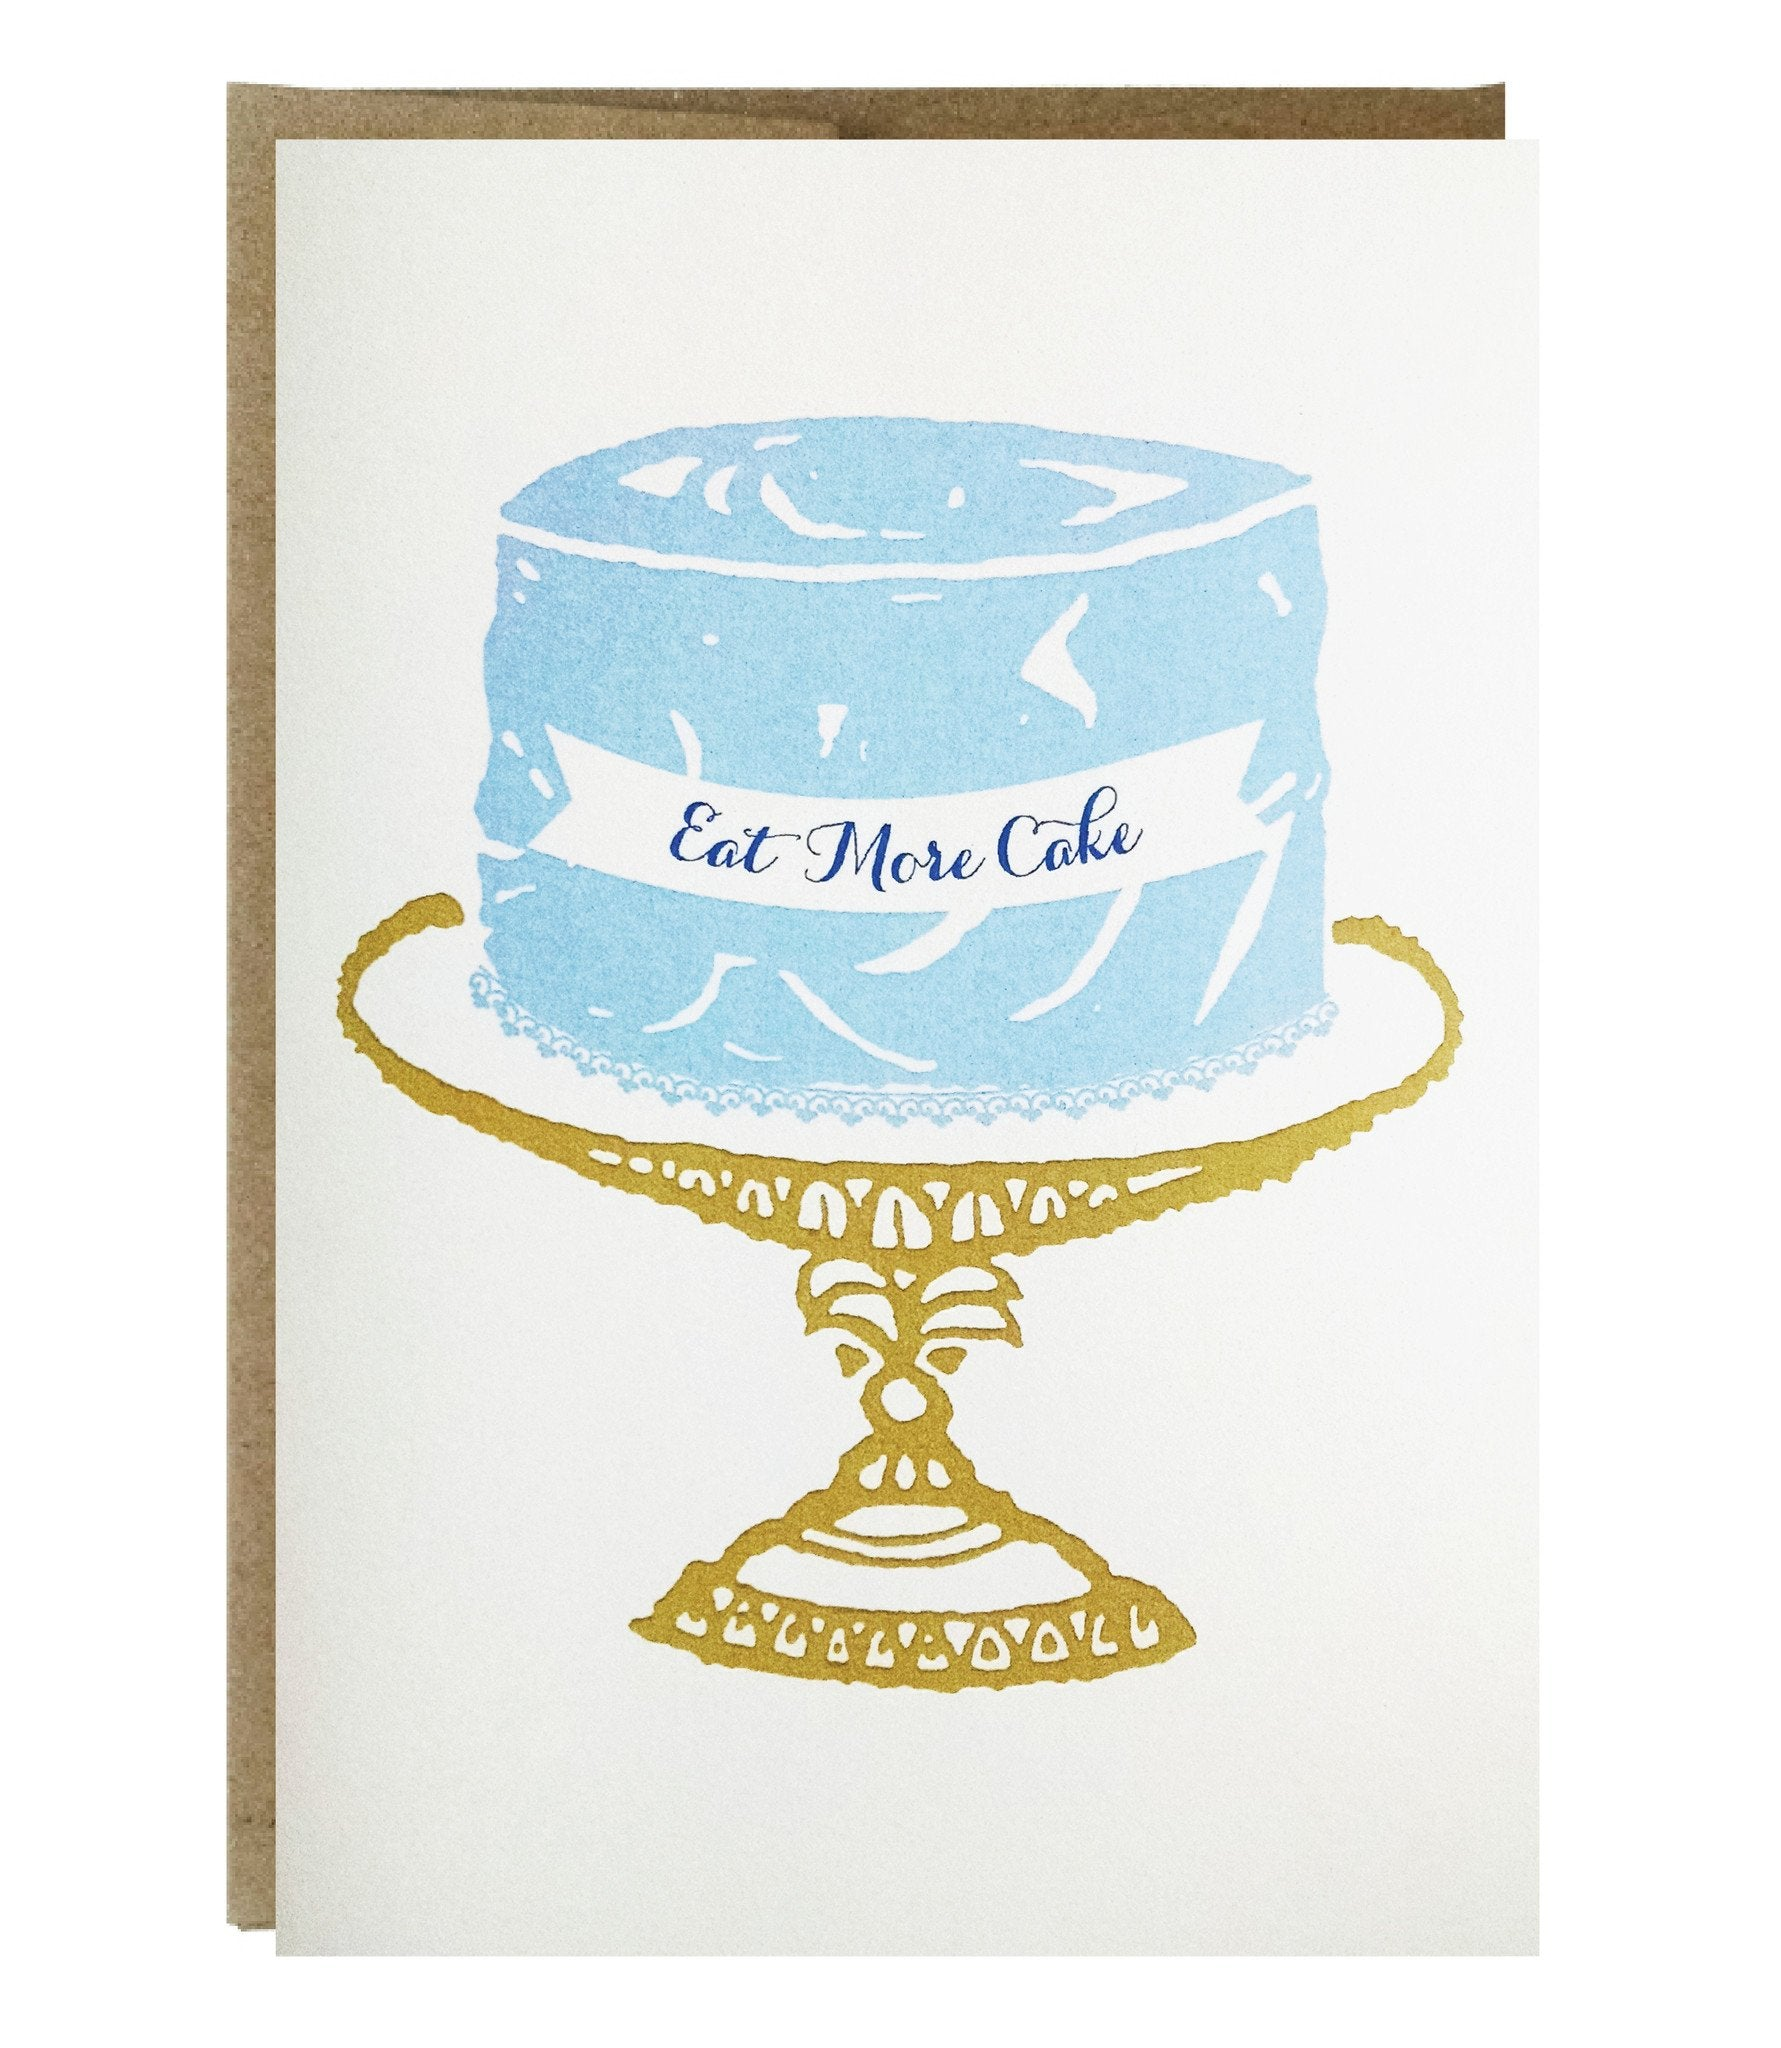 Eat More Cake Greeting Card 200 Each Case Of 6 Idea Chc